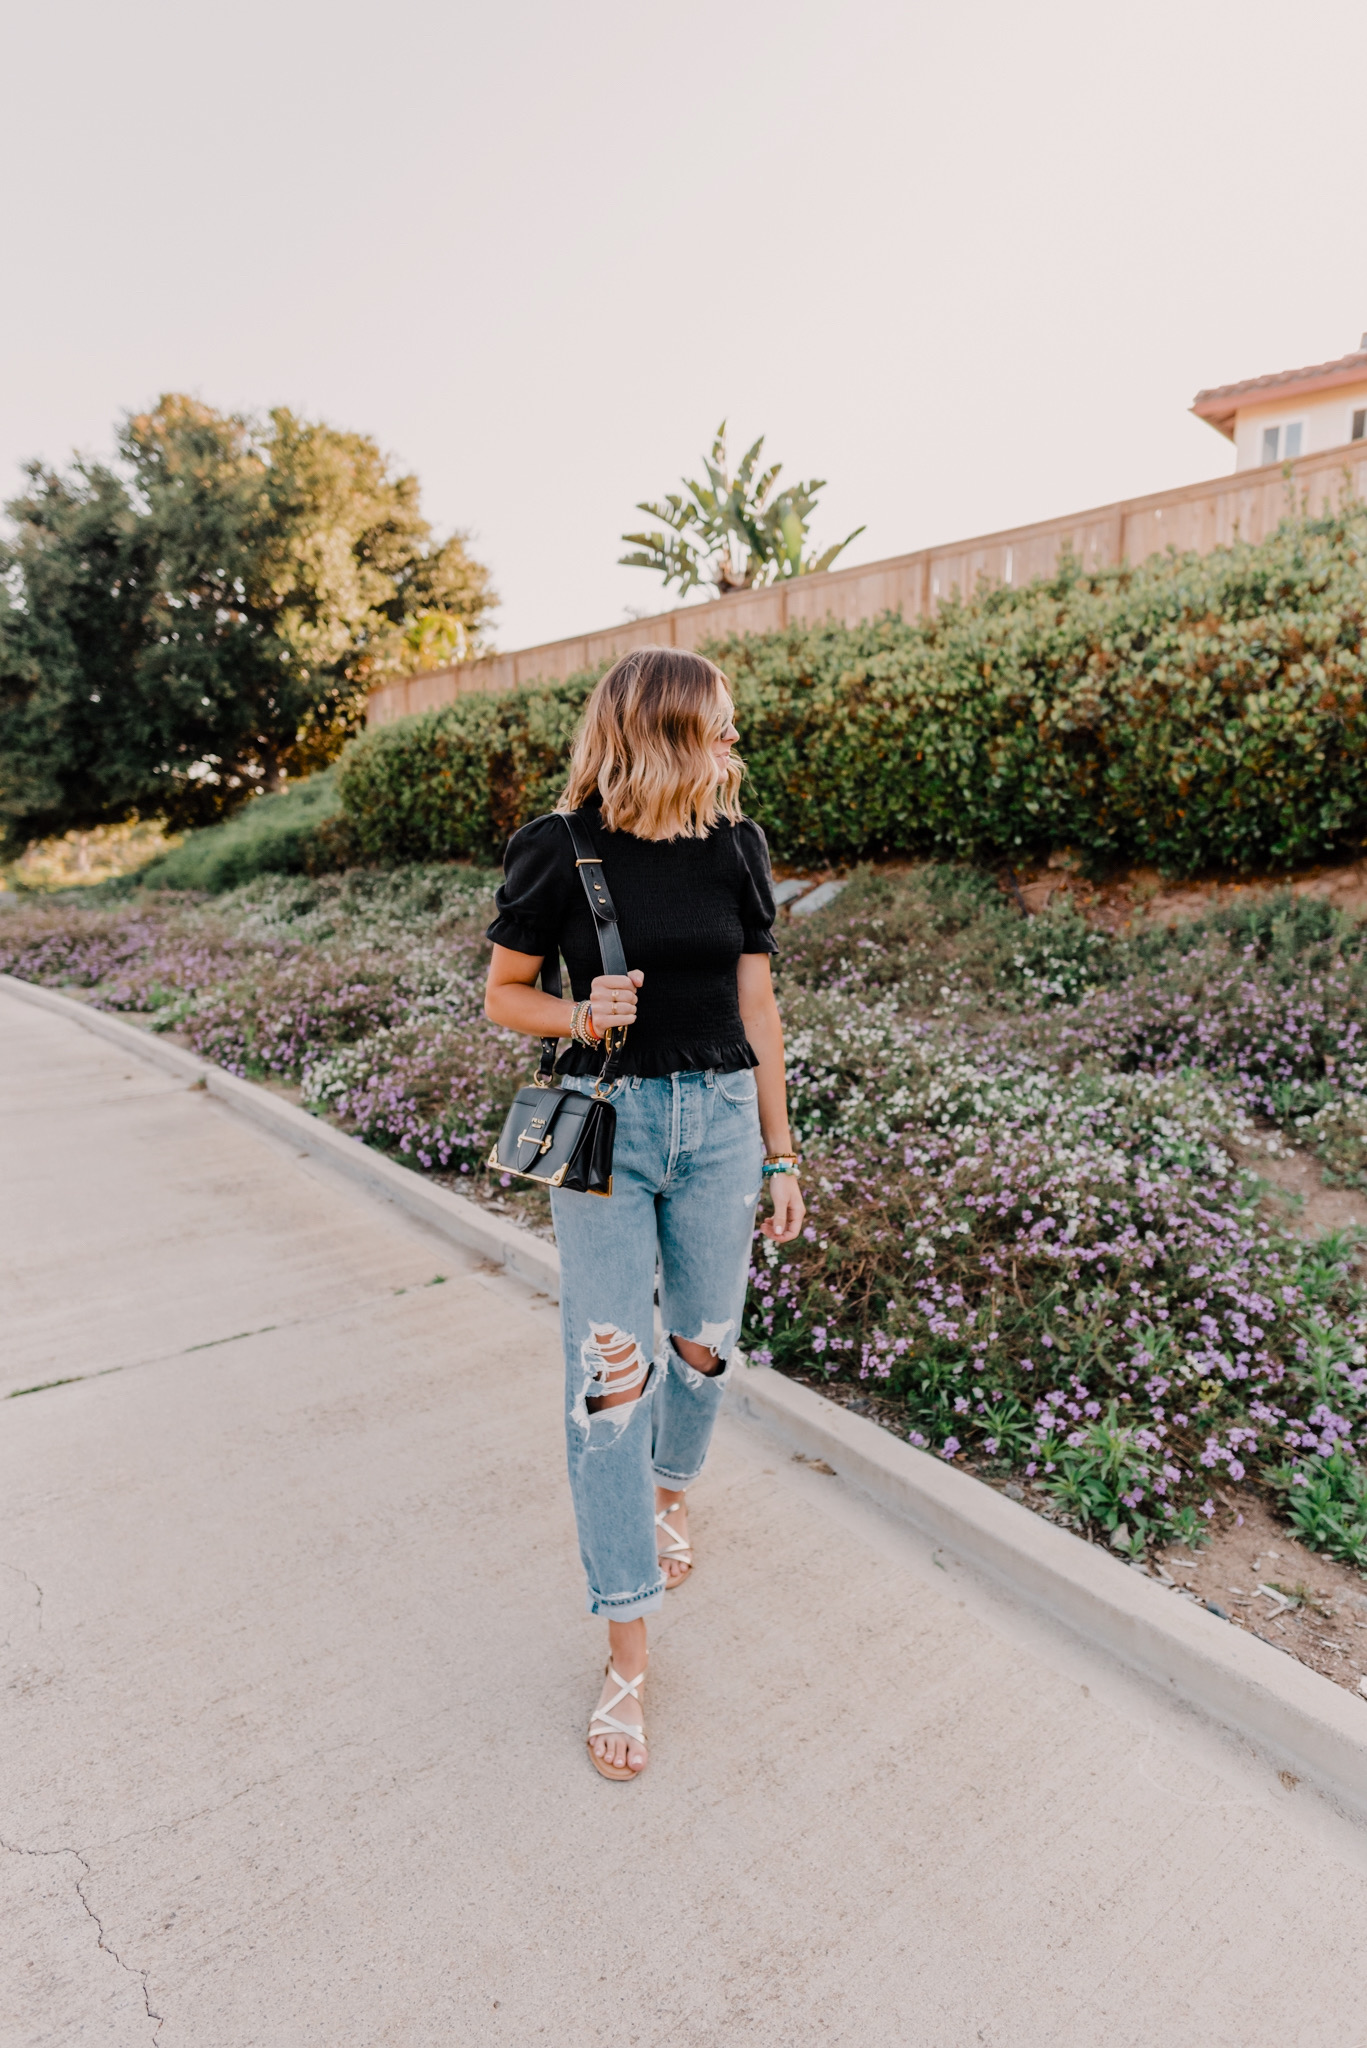 New Sale Favorites by popular San Diego fashion blog, Navy Grace: image of a woman walking outside and wearing a Forever 21 Smocked Ruffled Top, Revolve Agolde 90s Mid Rise Loose Fit jeans, H&M gold colored sandals, Farfetch PRADA Cashier shoulder bag, and Ray-Ban ROUND DOUBLE BRIDGE sunglasses.